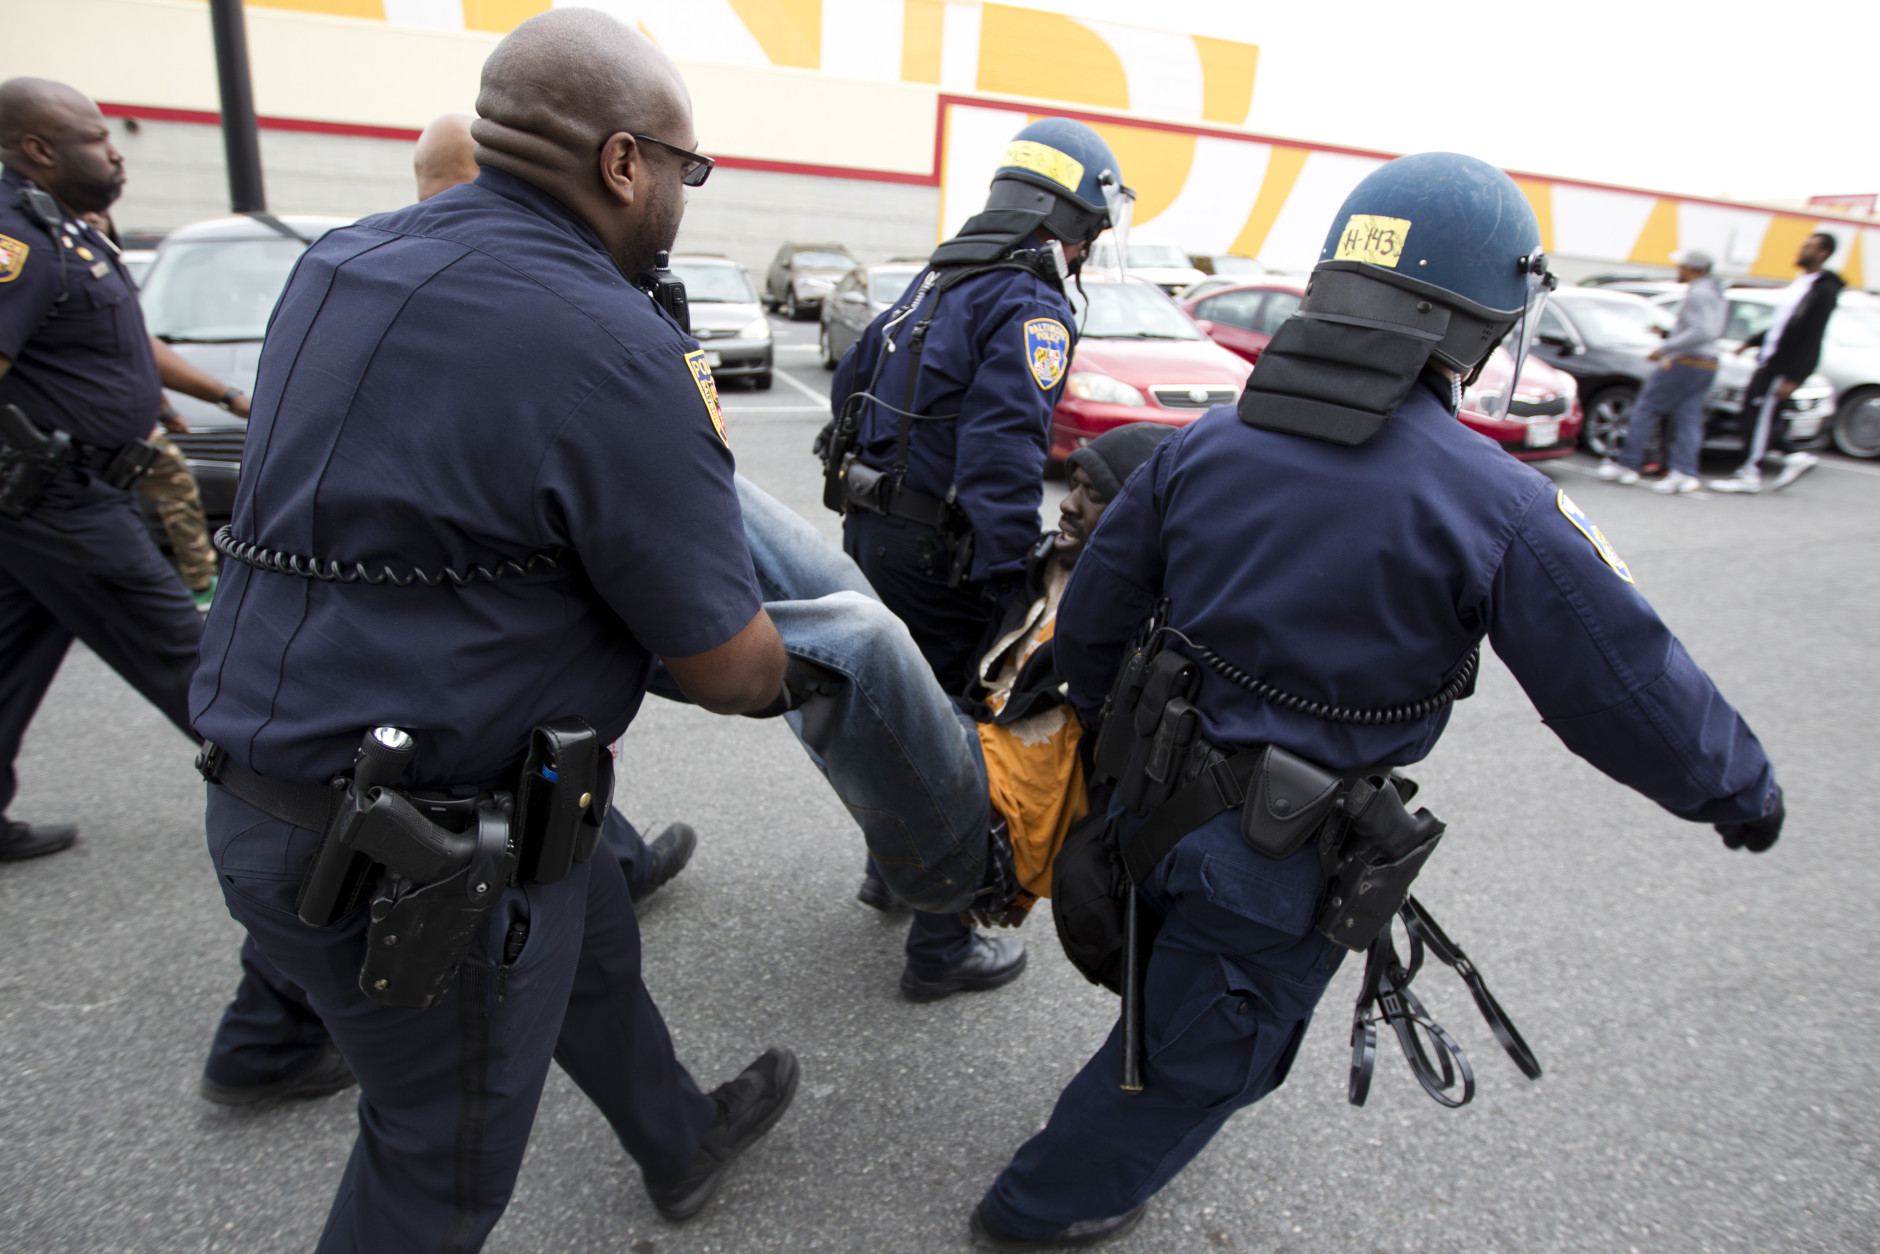 Baltimore police officers detain a demonstrator after clashes with police, after the funeral of Freddie Gray, Monday, April 27, 2015, at New Shiloh Baptist Church in Baltimore. Gray died from spinal injuries after he was arrested and transported in a Baltimore Police Department van. (AP Photo/Jose Luis Magana)